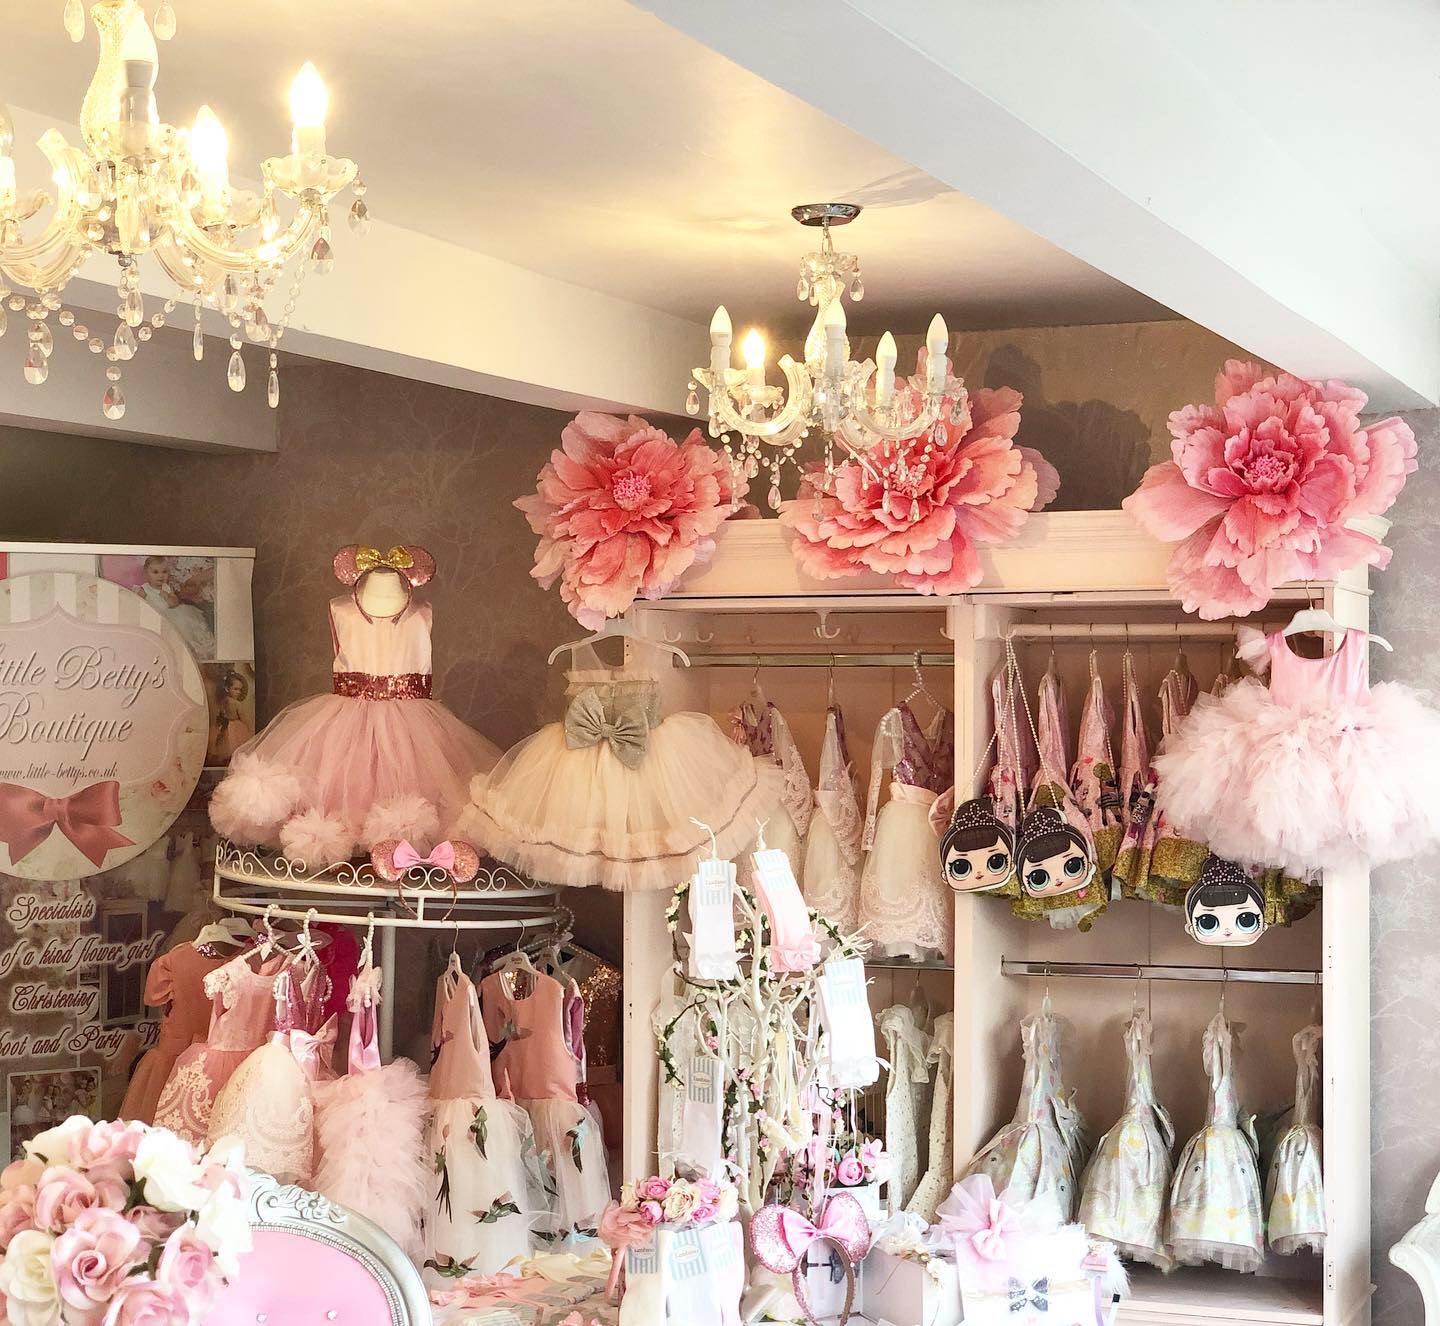 Dresses for flower girls on dirplay inside Little Betty's boutique in Stockport